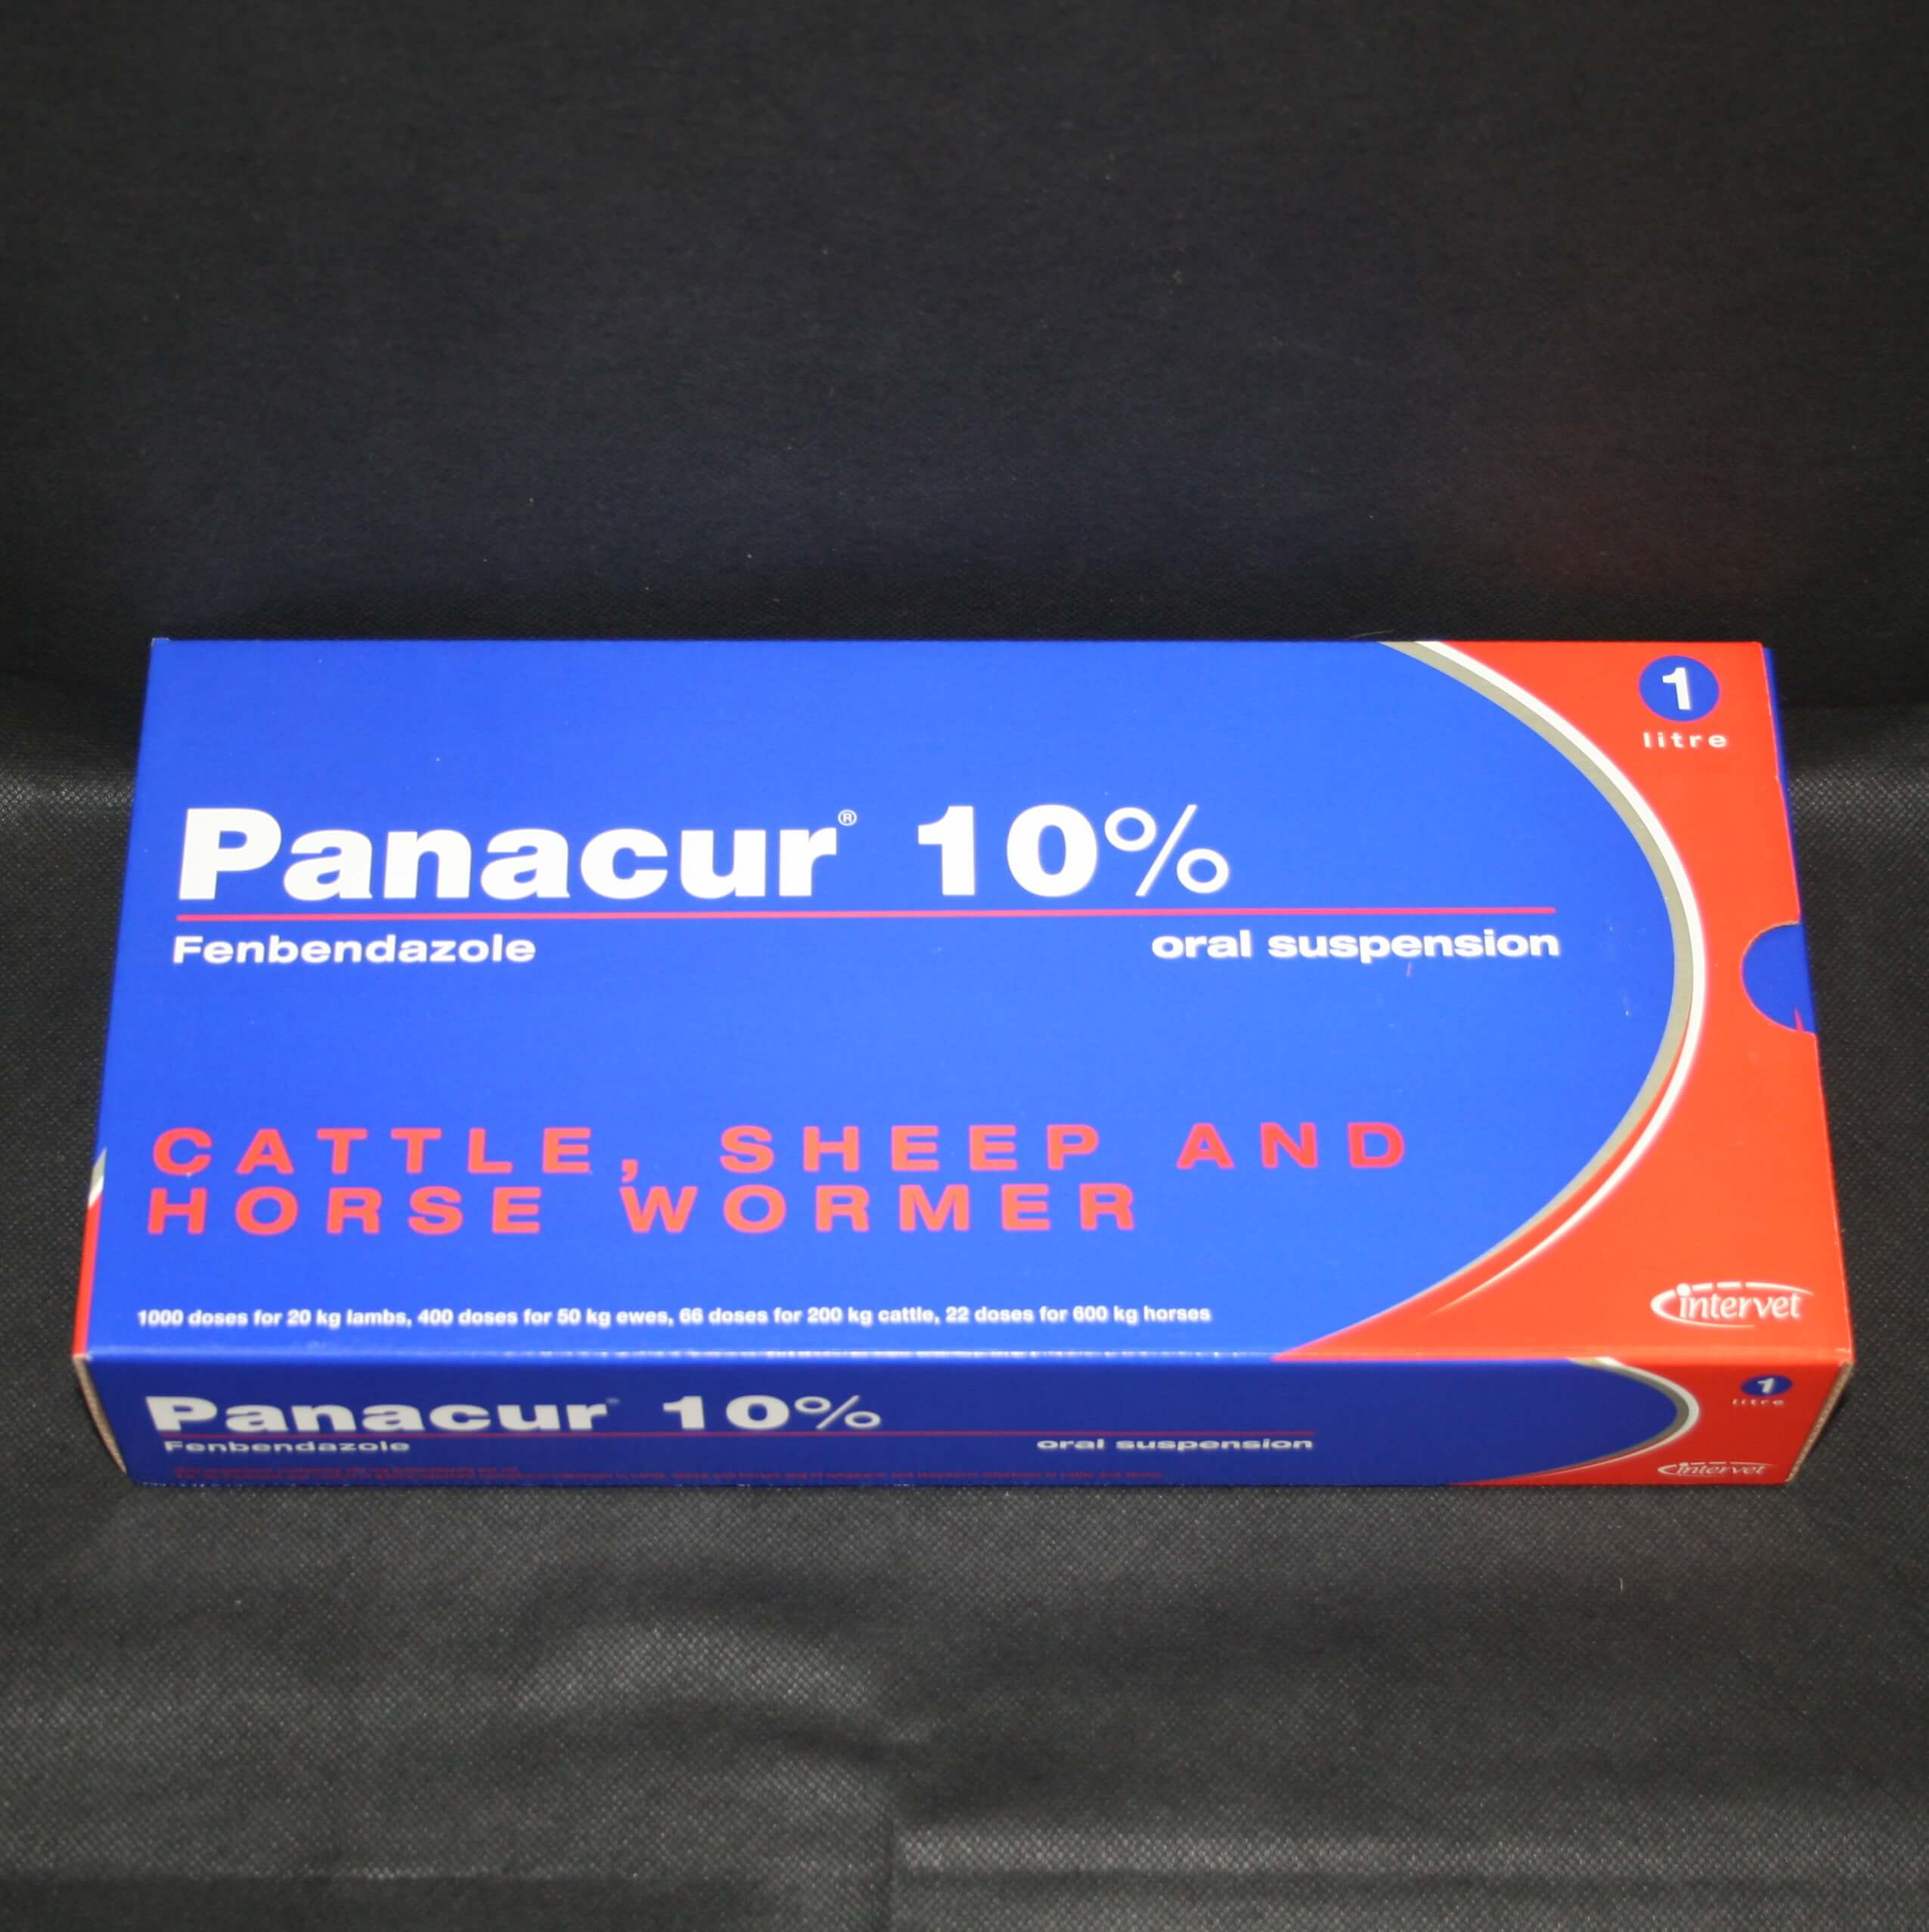 Panacur 10% Oral Suspension